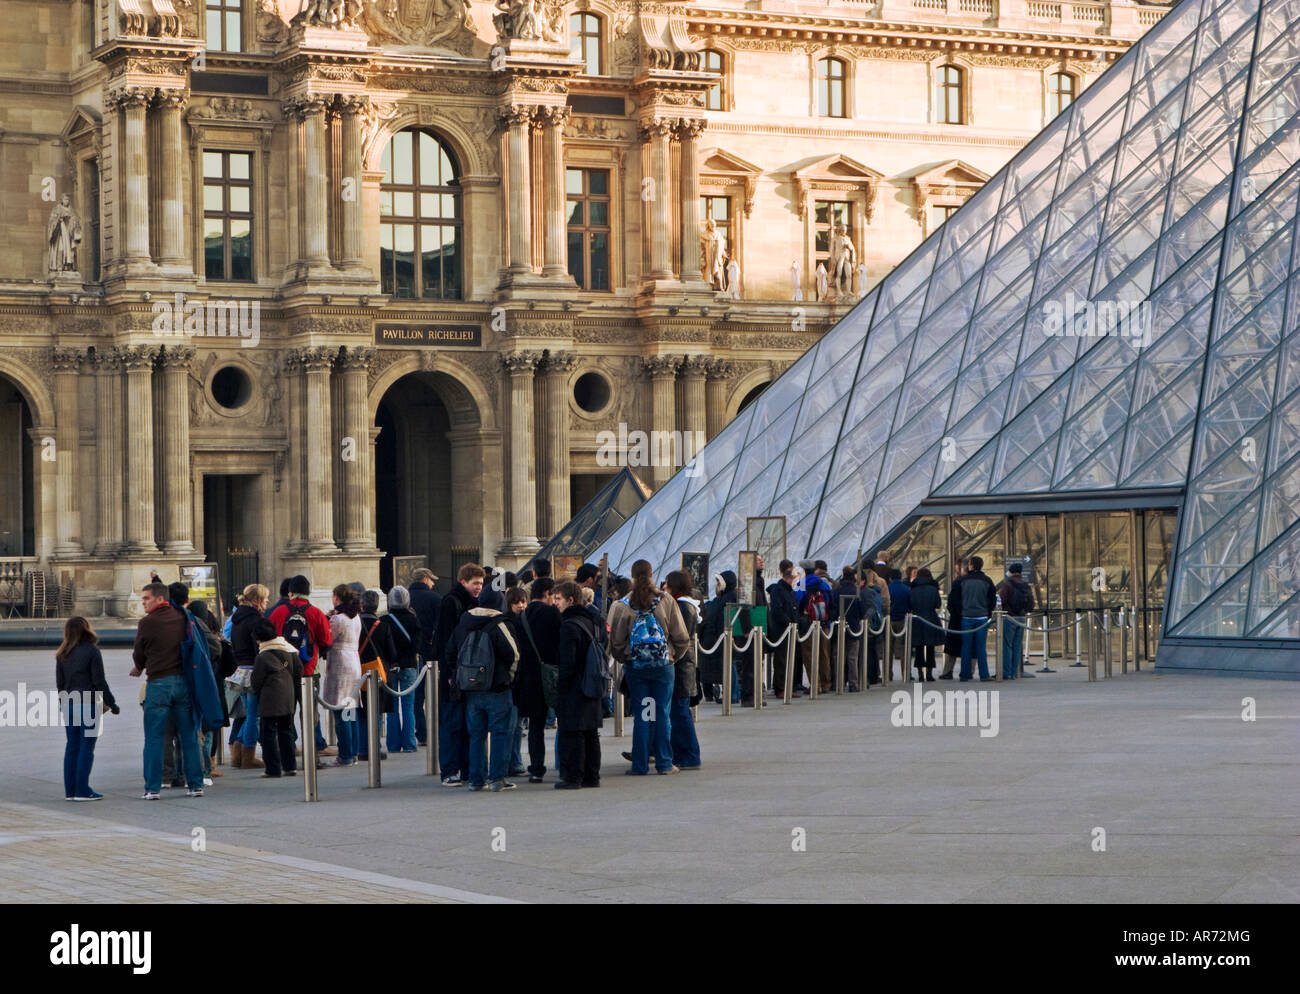 Louvre Museum, Paris, France, Europe - Visitors queue up early in the morning at the Louvre Pyramid entrance - Stock Image